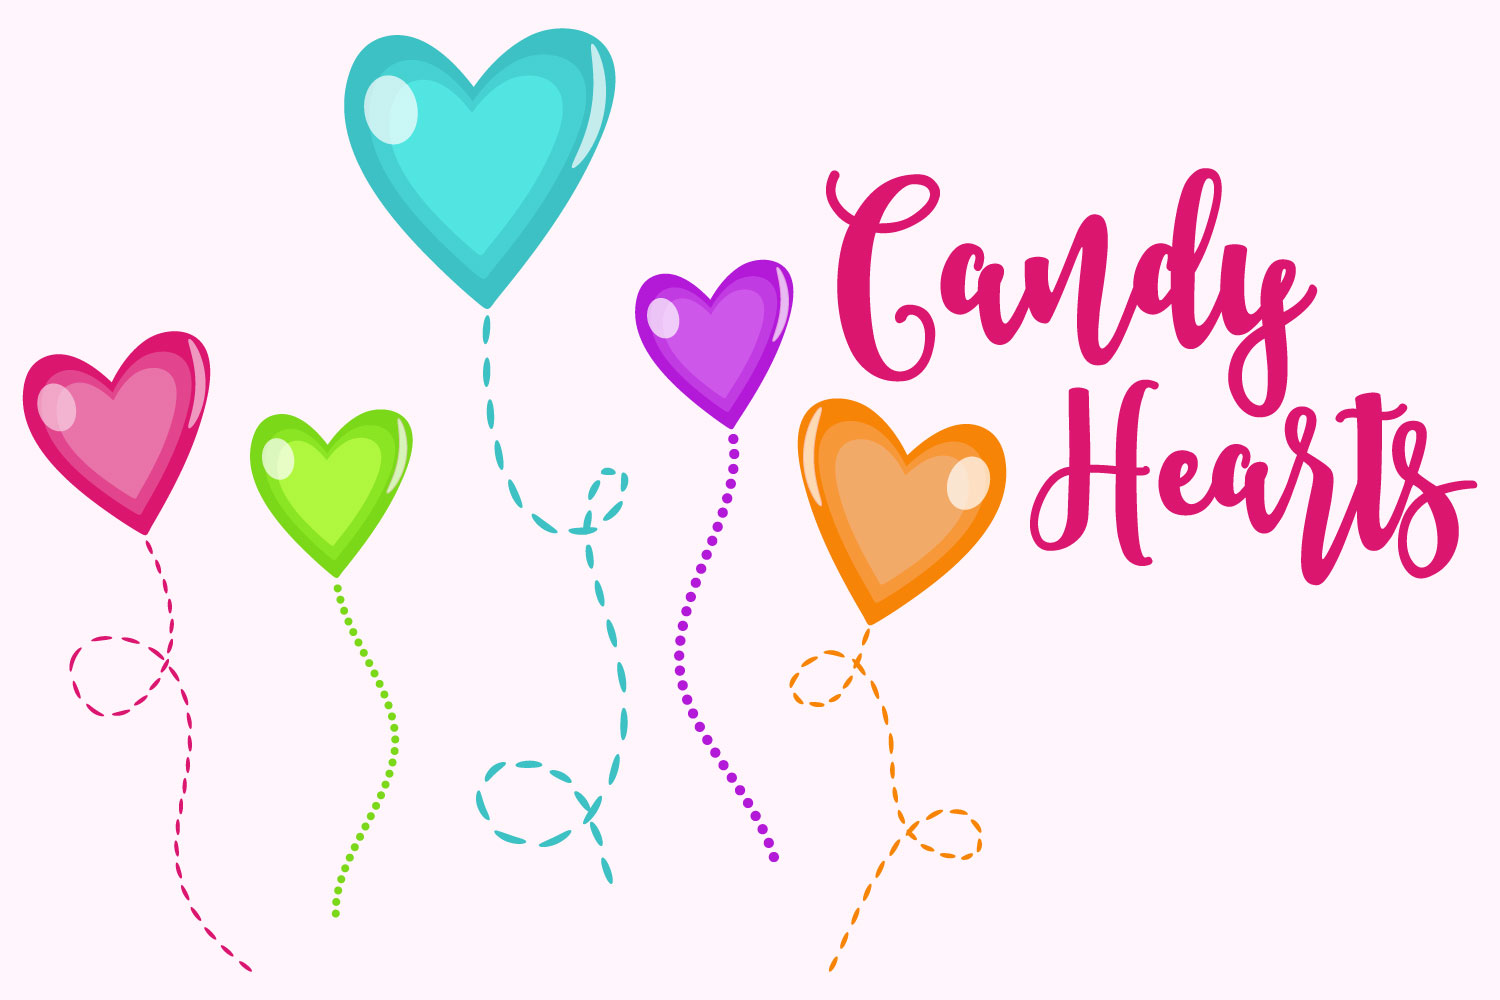 Download Free Candy Hearts On Stems Graphic By Sonyadehart Creative Fabrica for Cricut Explore, Silhouette and other cutting machines.